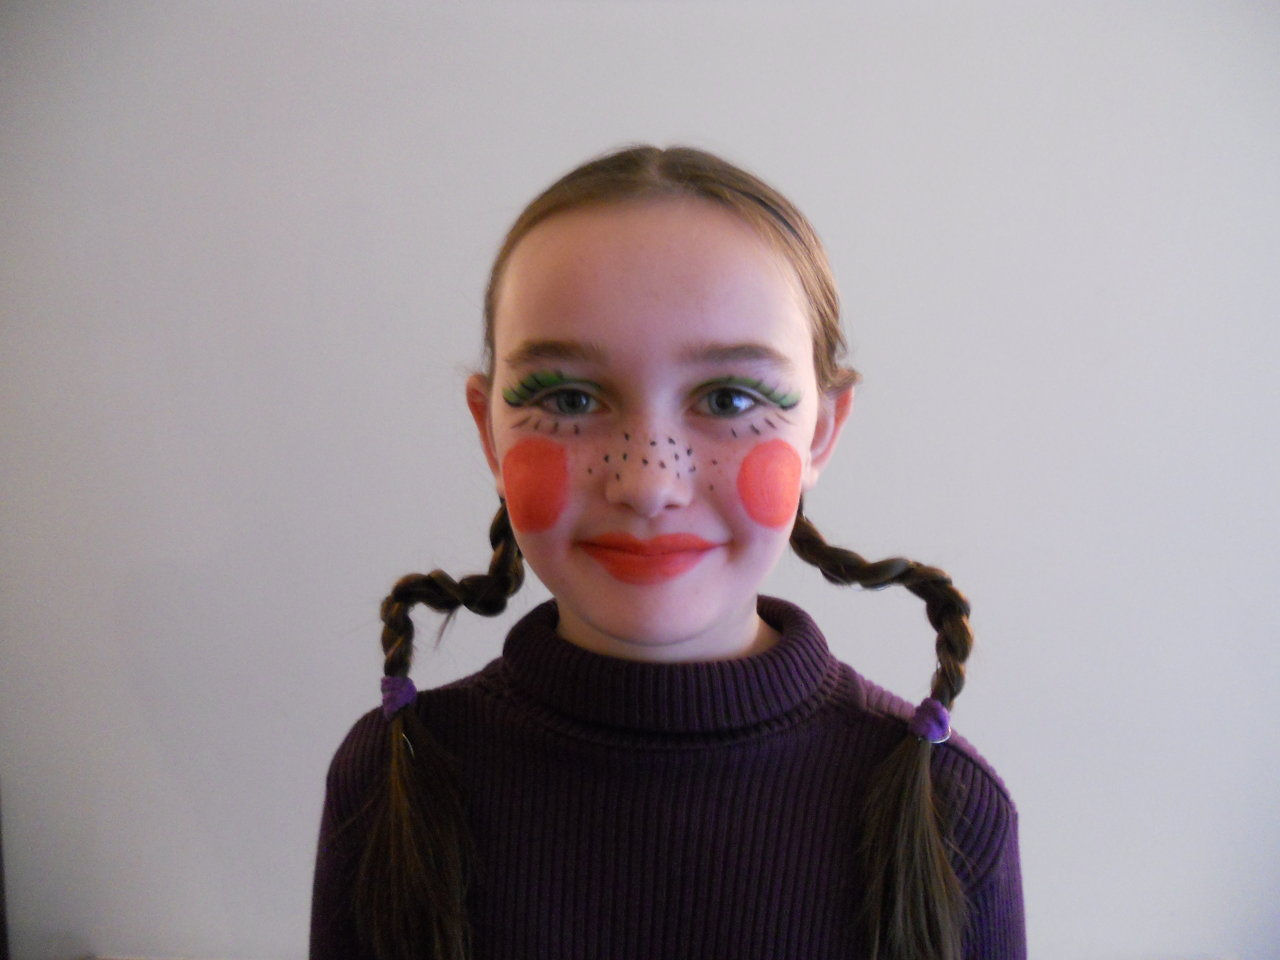 Wix.com Smudges-face-painting created by happybee based on ... Happybee